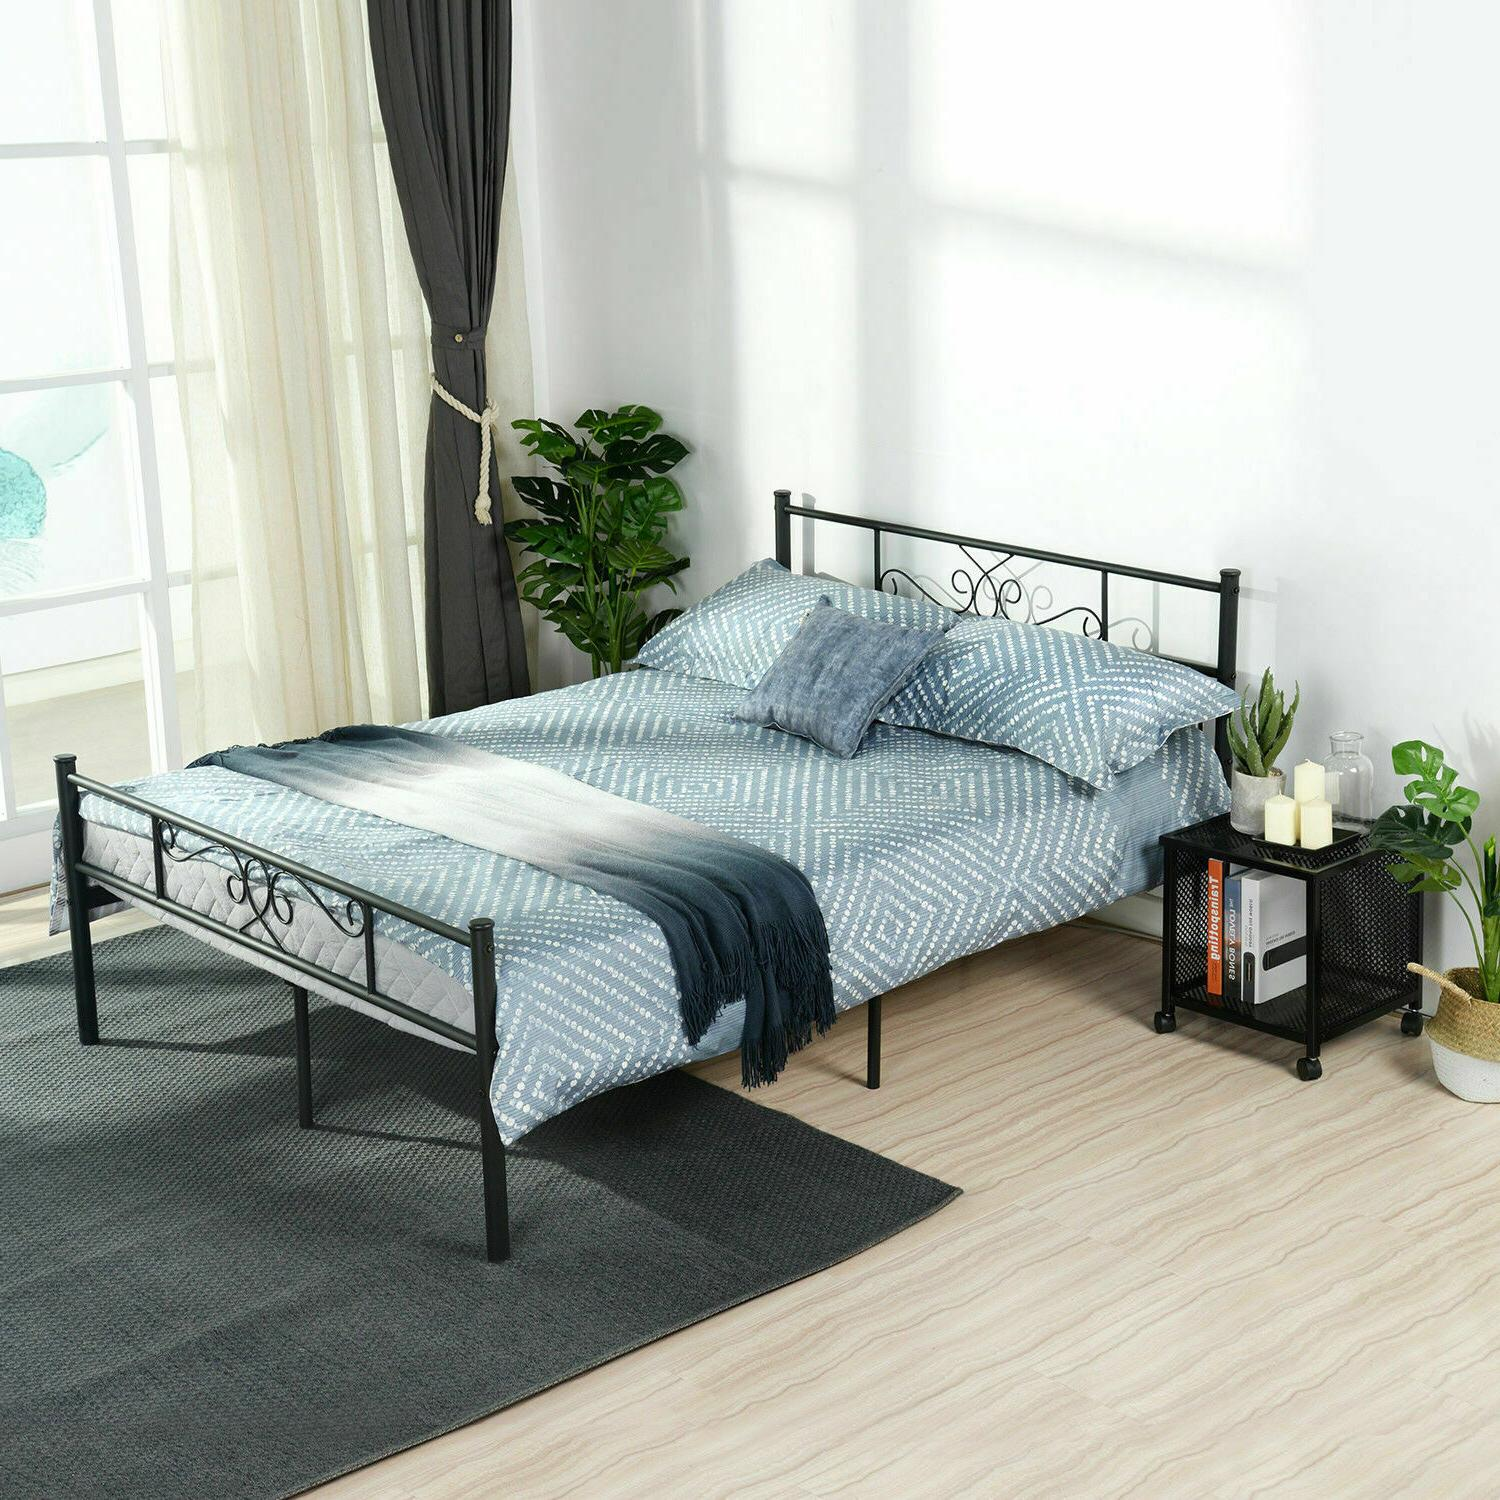 Platform Frame Twin Full Bed Headboard